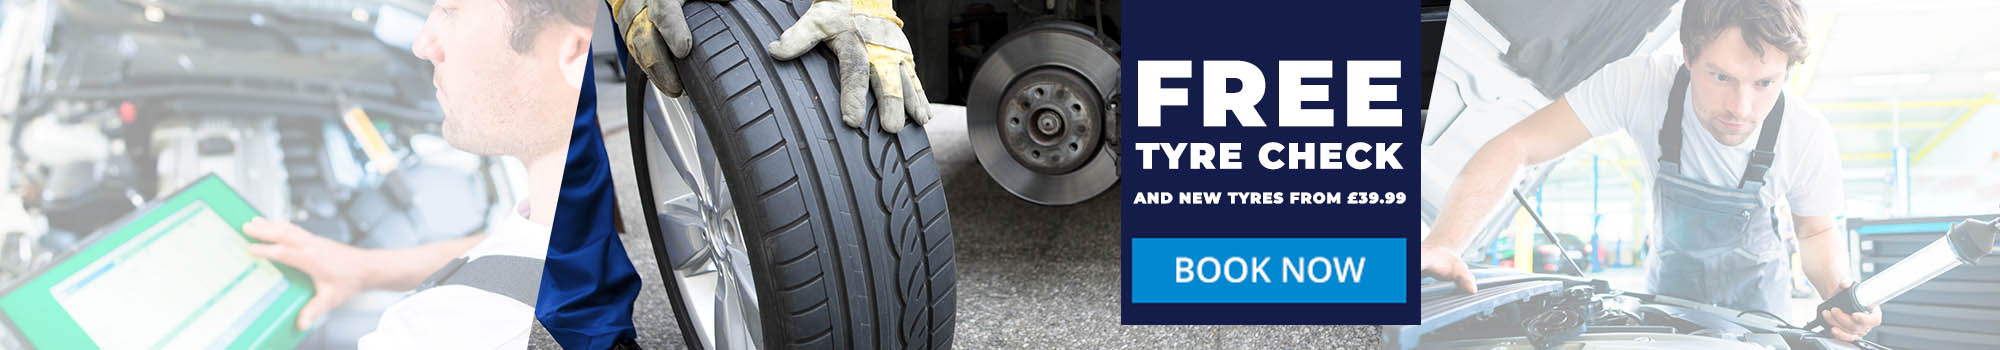 All Tyres &10 off at Sandicliffe Xpress Fit